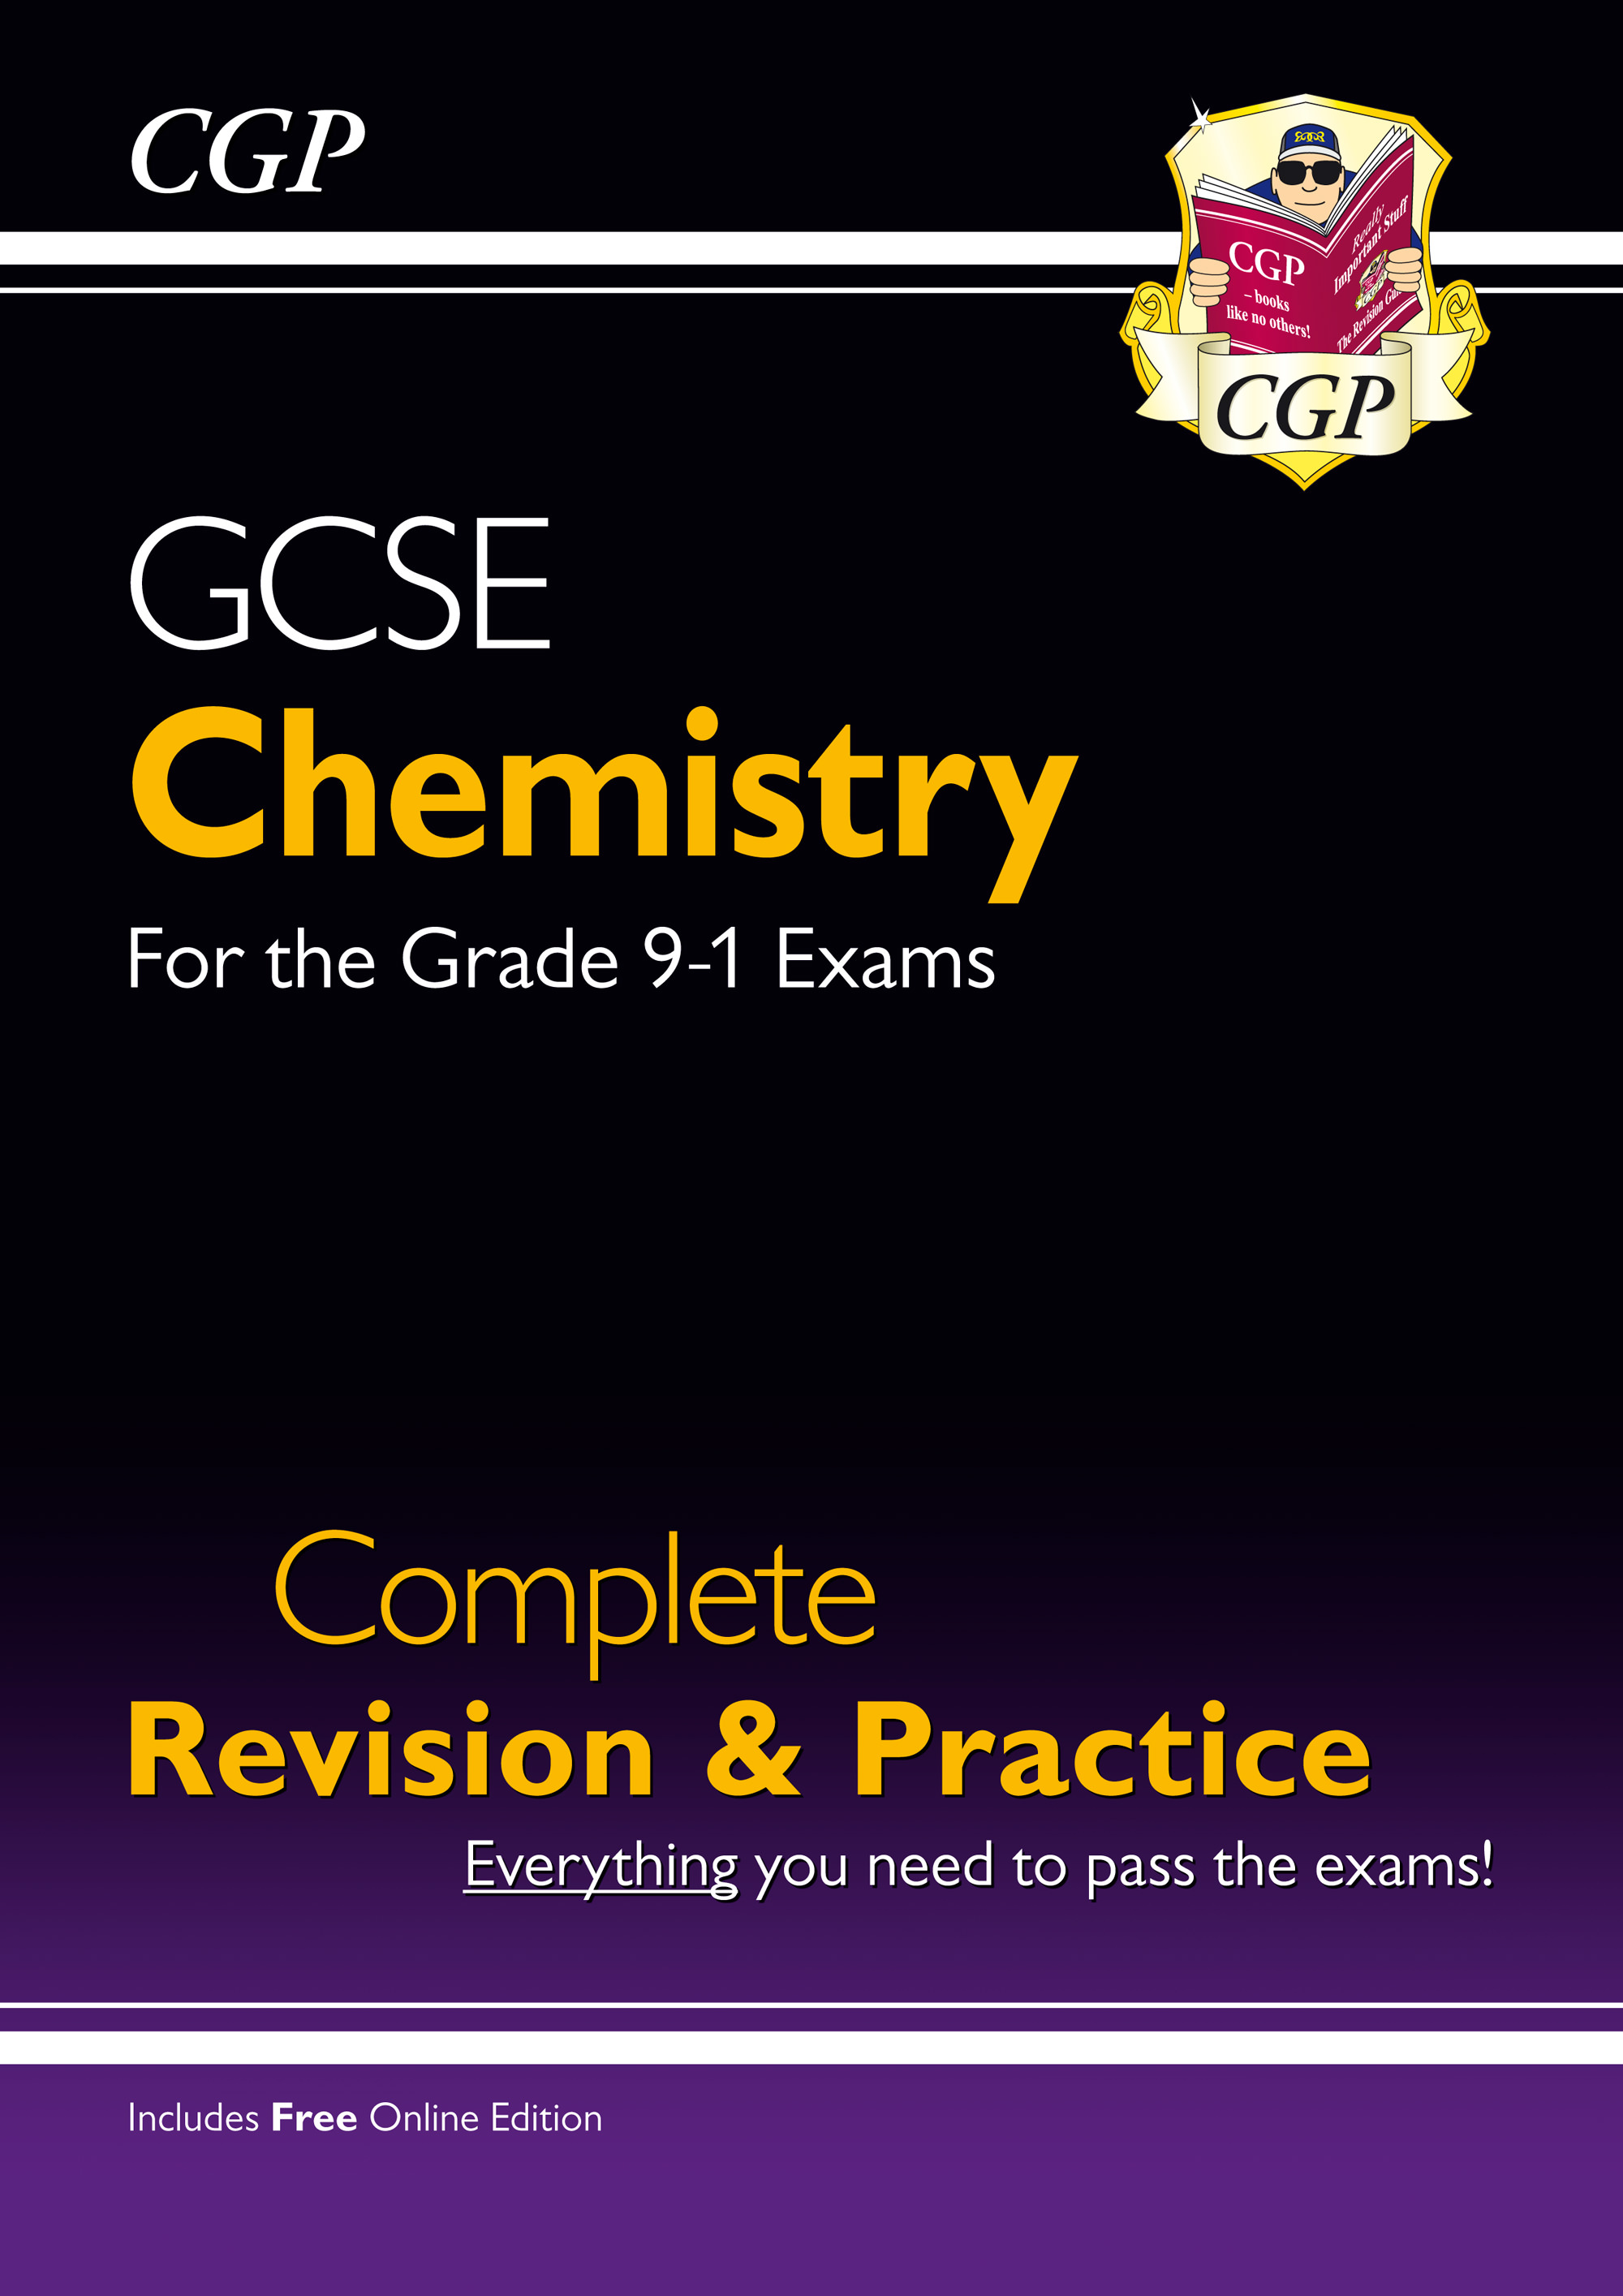 CHS45 - New Grade 9-1 GCSE Chemistry Complete Revision & Practice with Online Edition